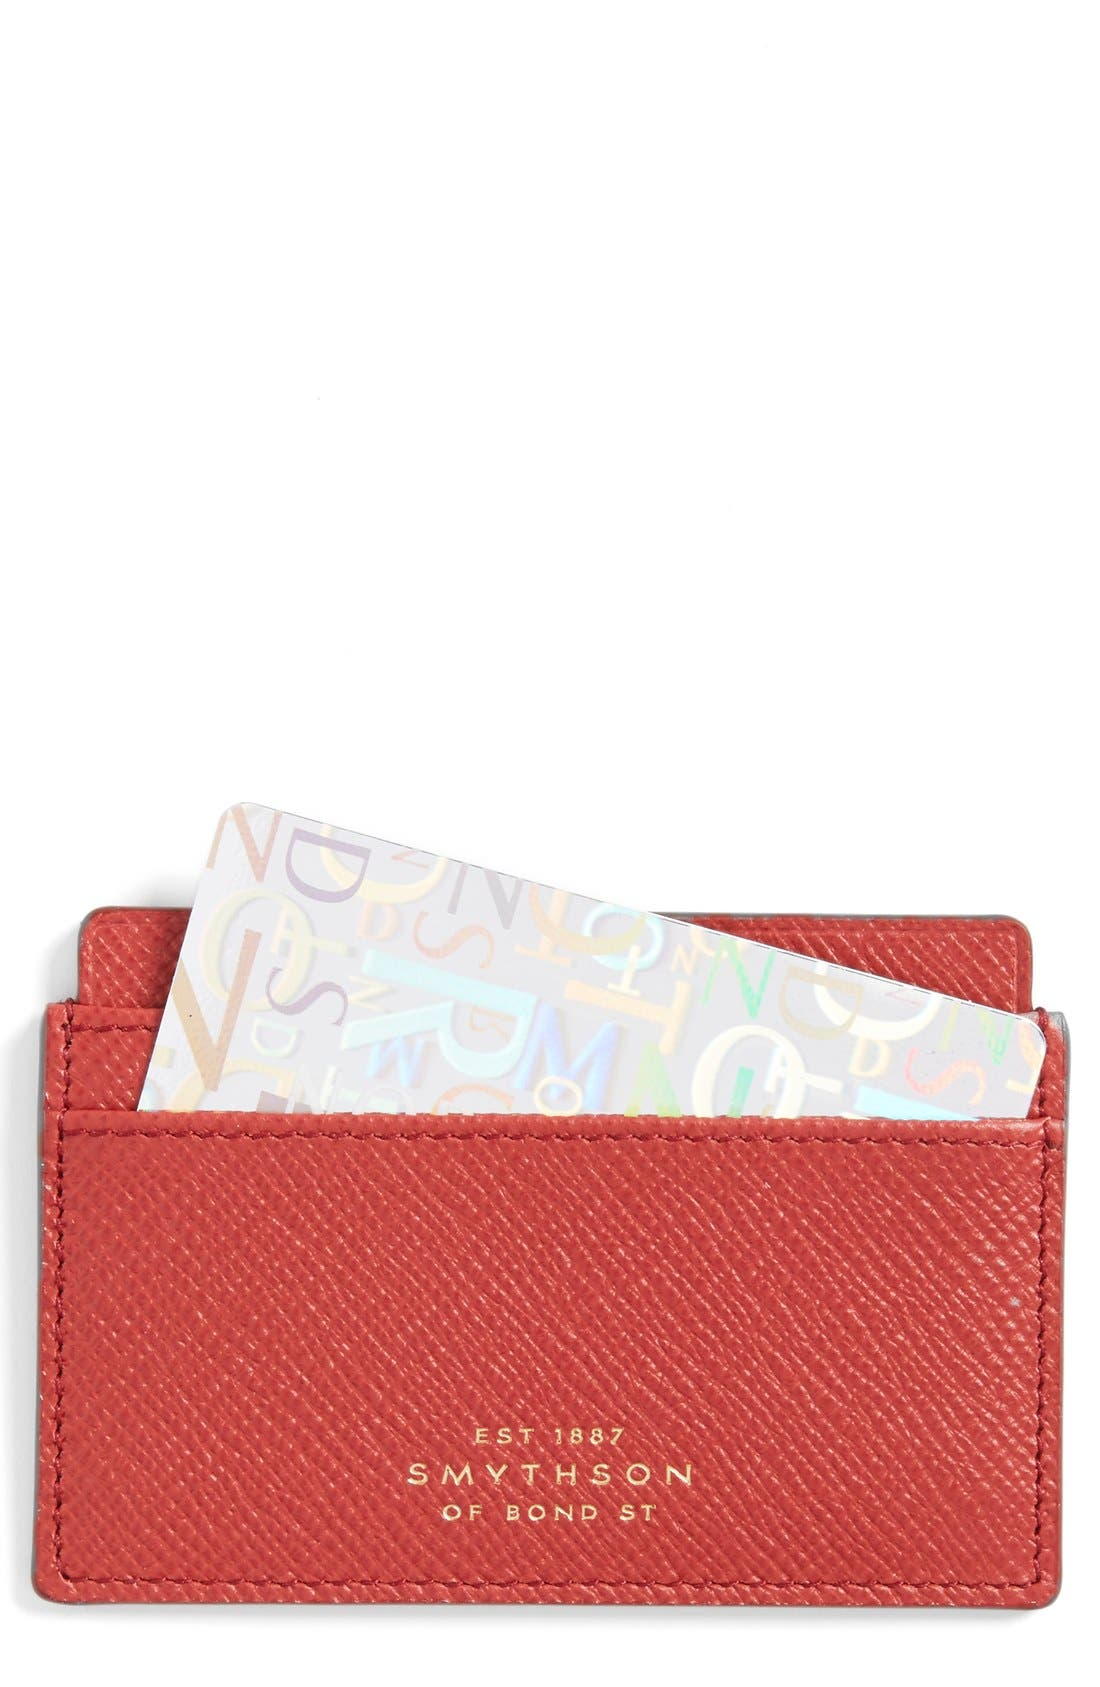 SMYTHSON 'Panama' Leather Card Case